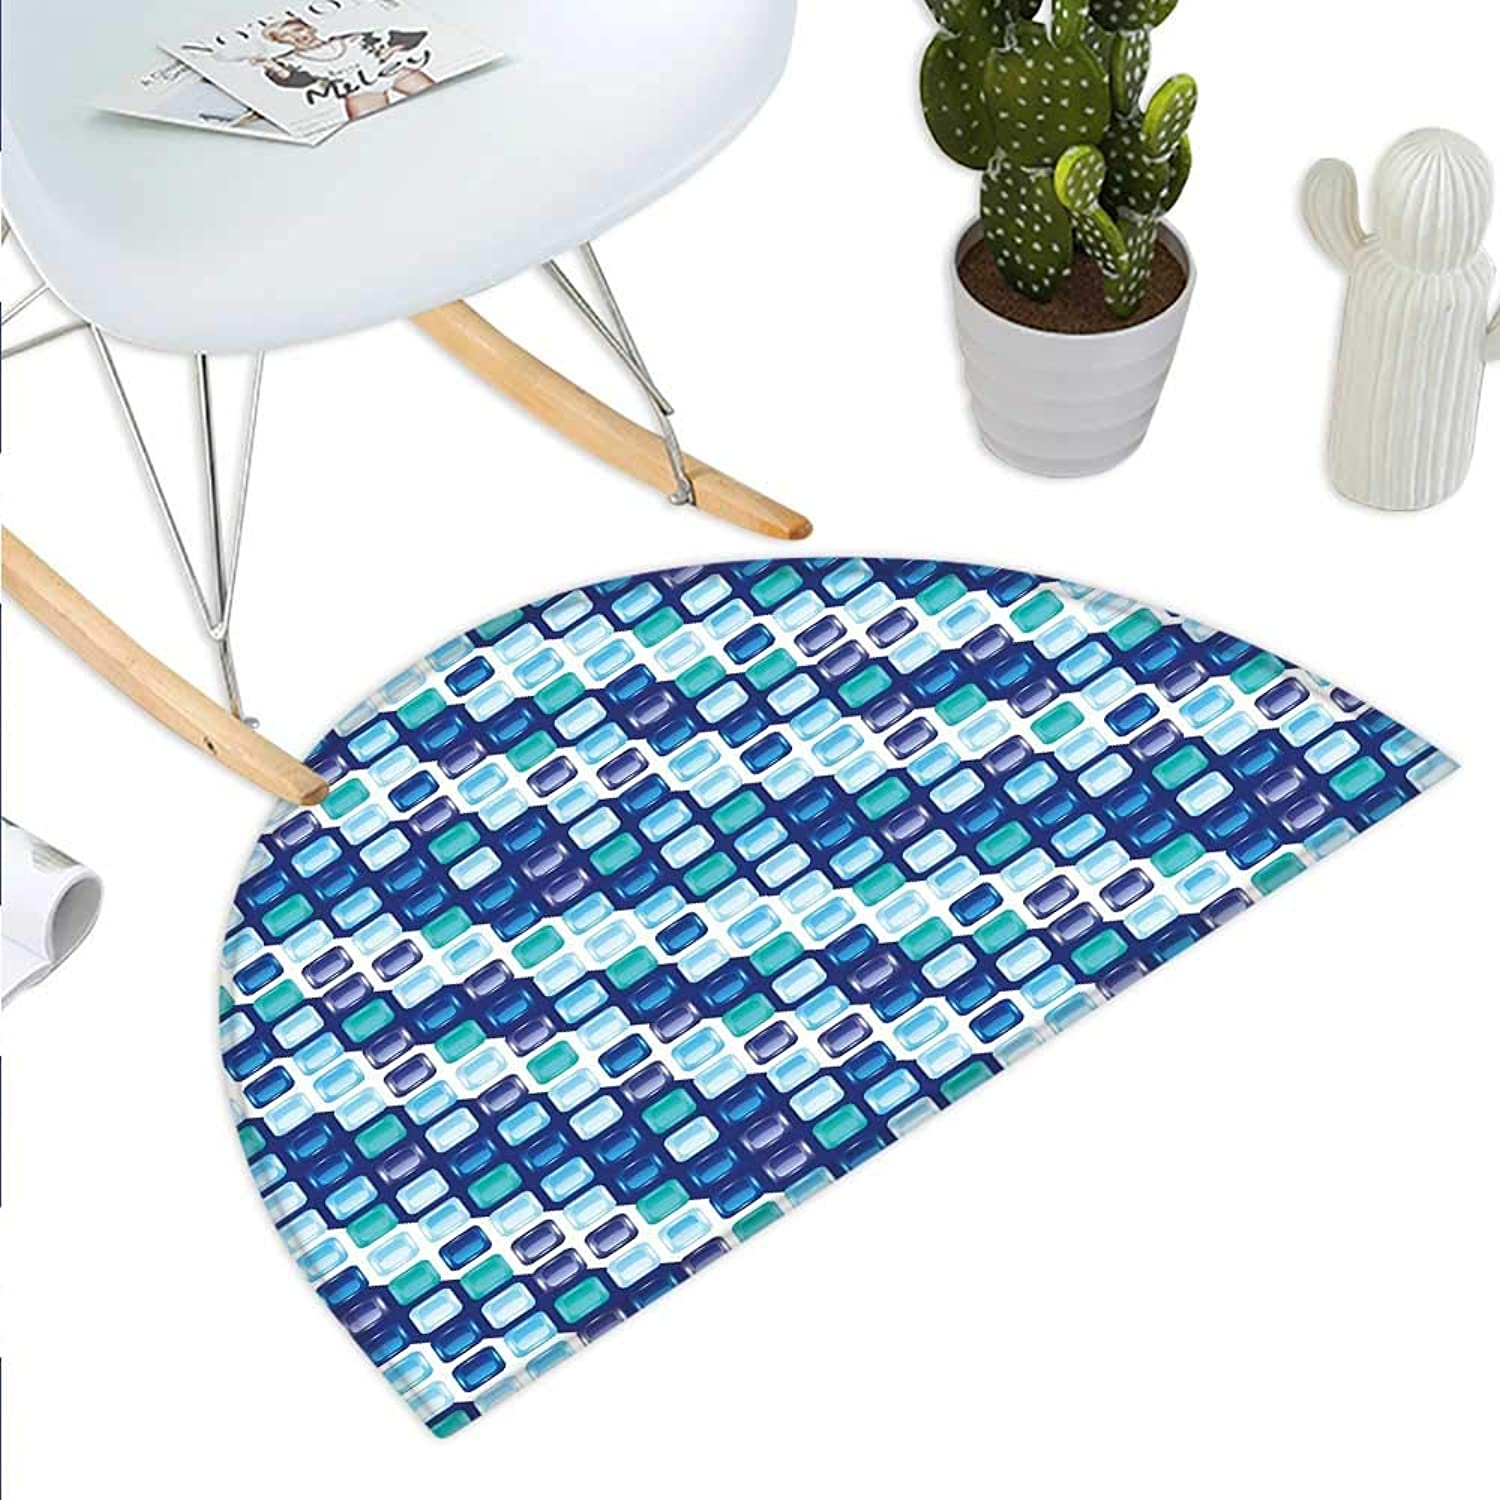 bluee Semicircle Doormat Retro Style Vintage Modern Design with Mosaics and Geometrical Squares Halfmoon doormats H 39.3  xD 59  Pale bluee White Dark bluee